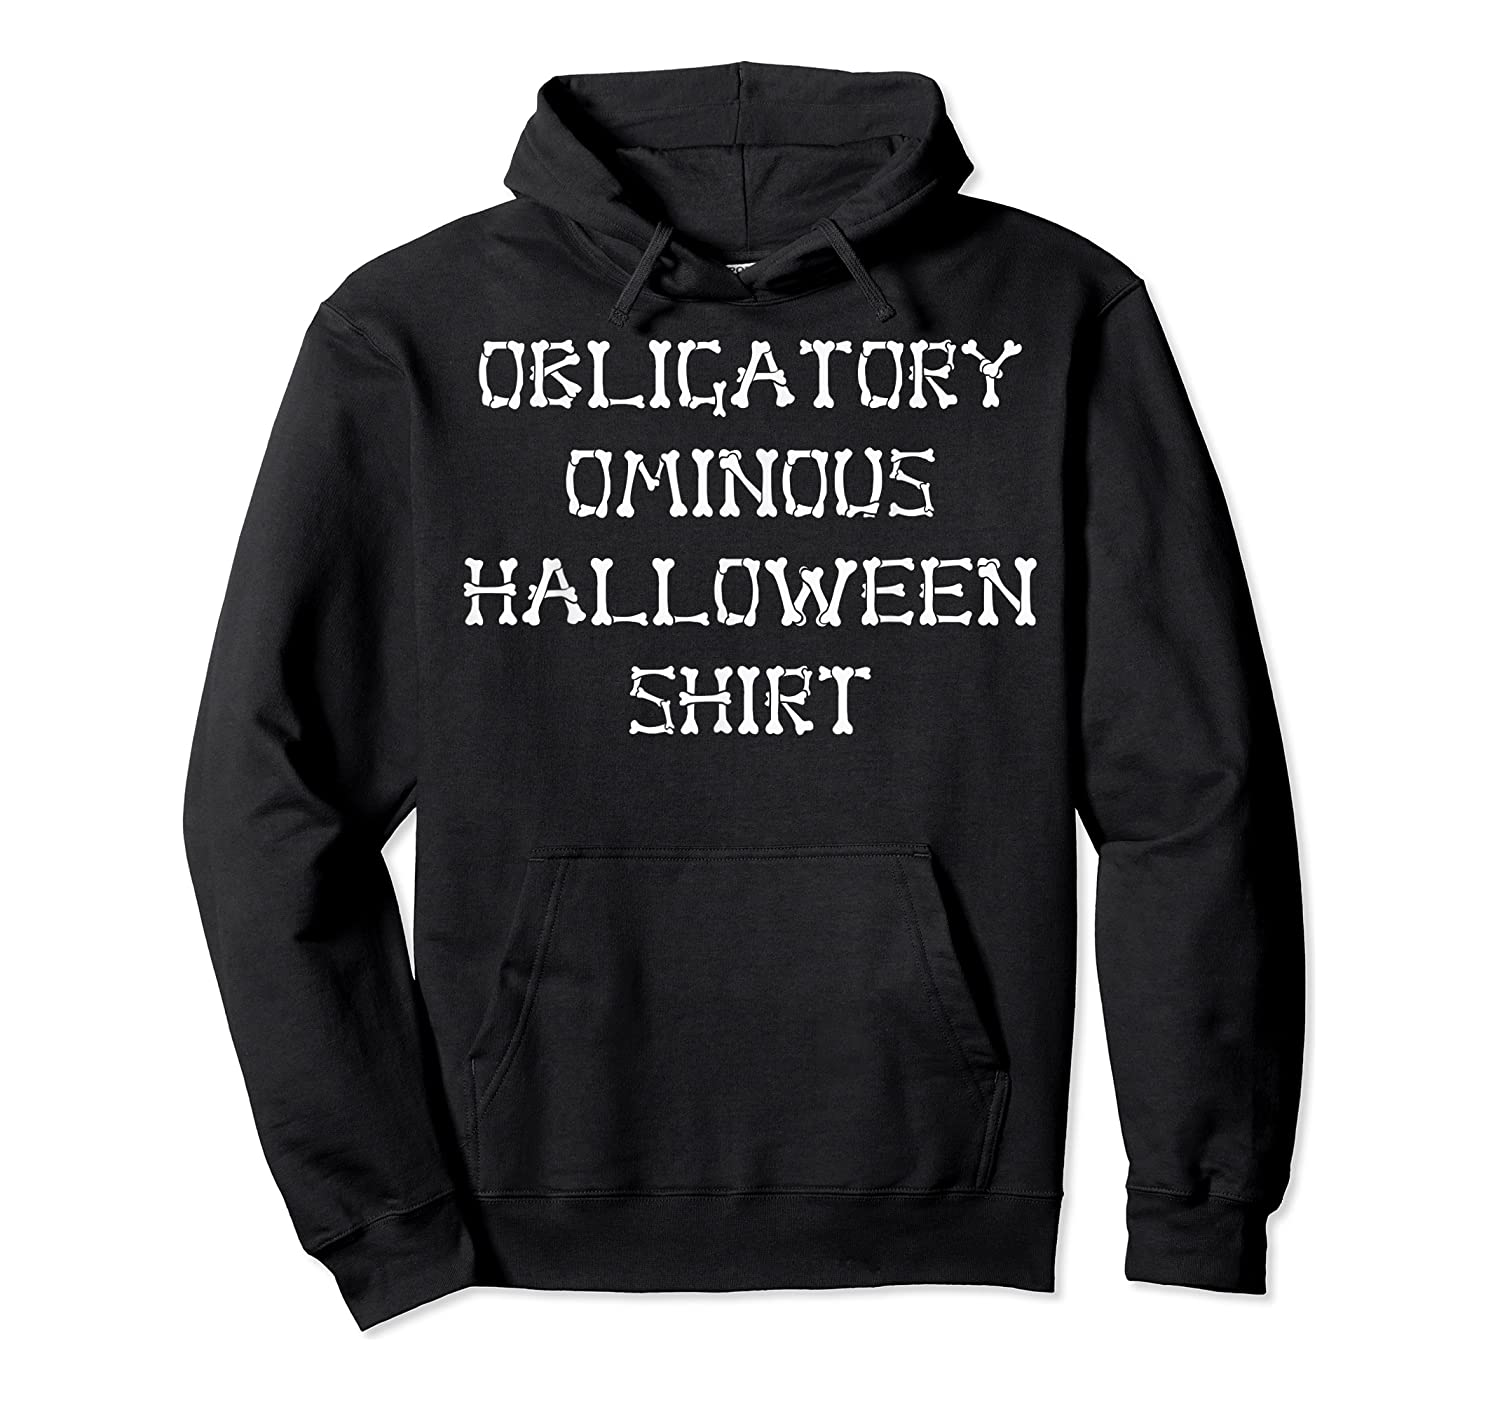 Obligatory Ominous Halloween All Hallows Eve Fun Party Gear T-shirt Unisex Pullover Hoodie